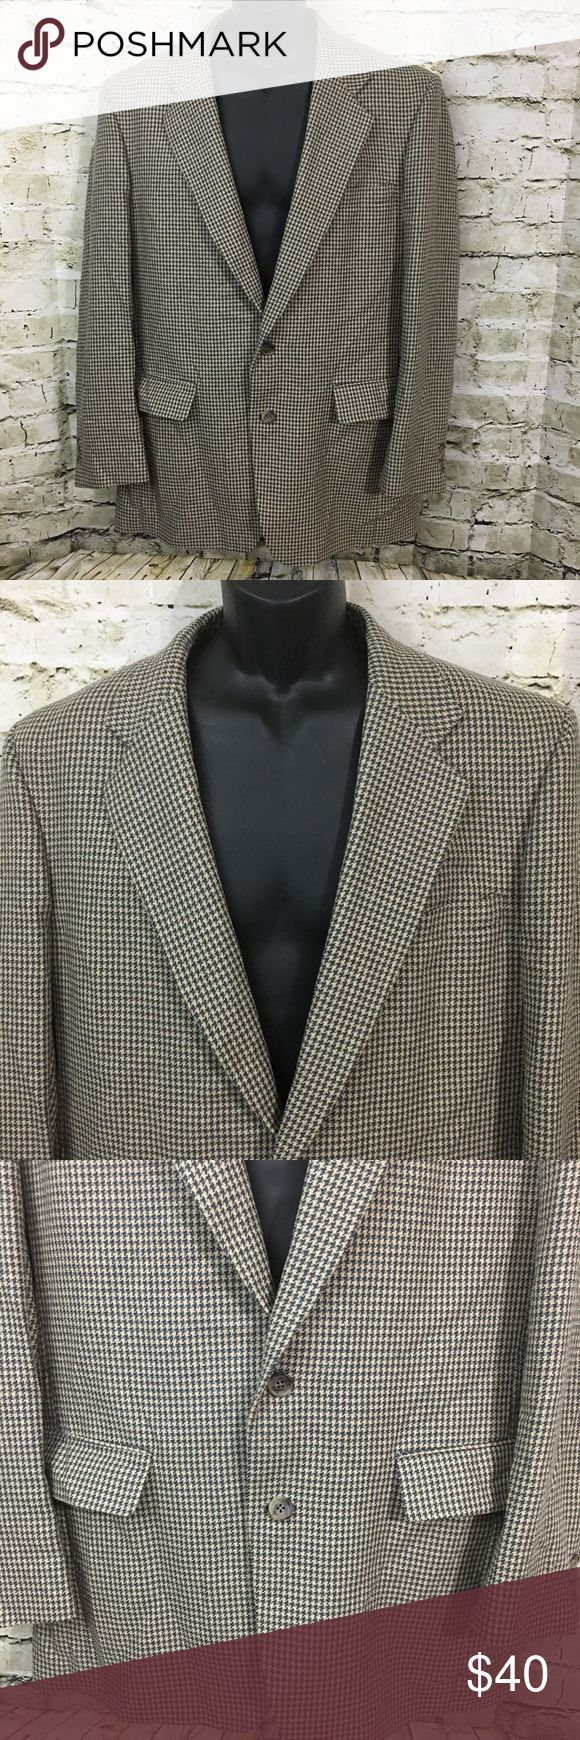 Jos. A. Bank Green/Tan Houndstooth Jacket Size 42L This is